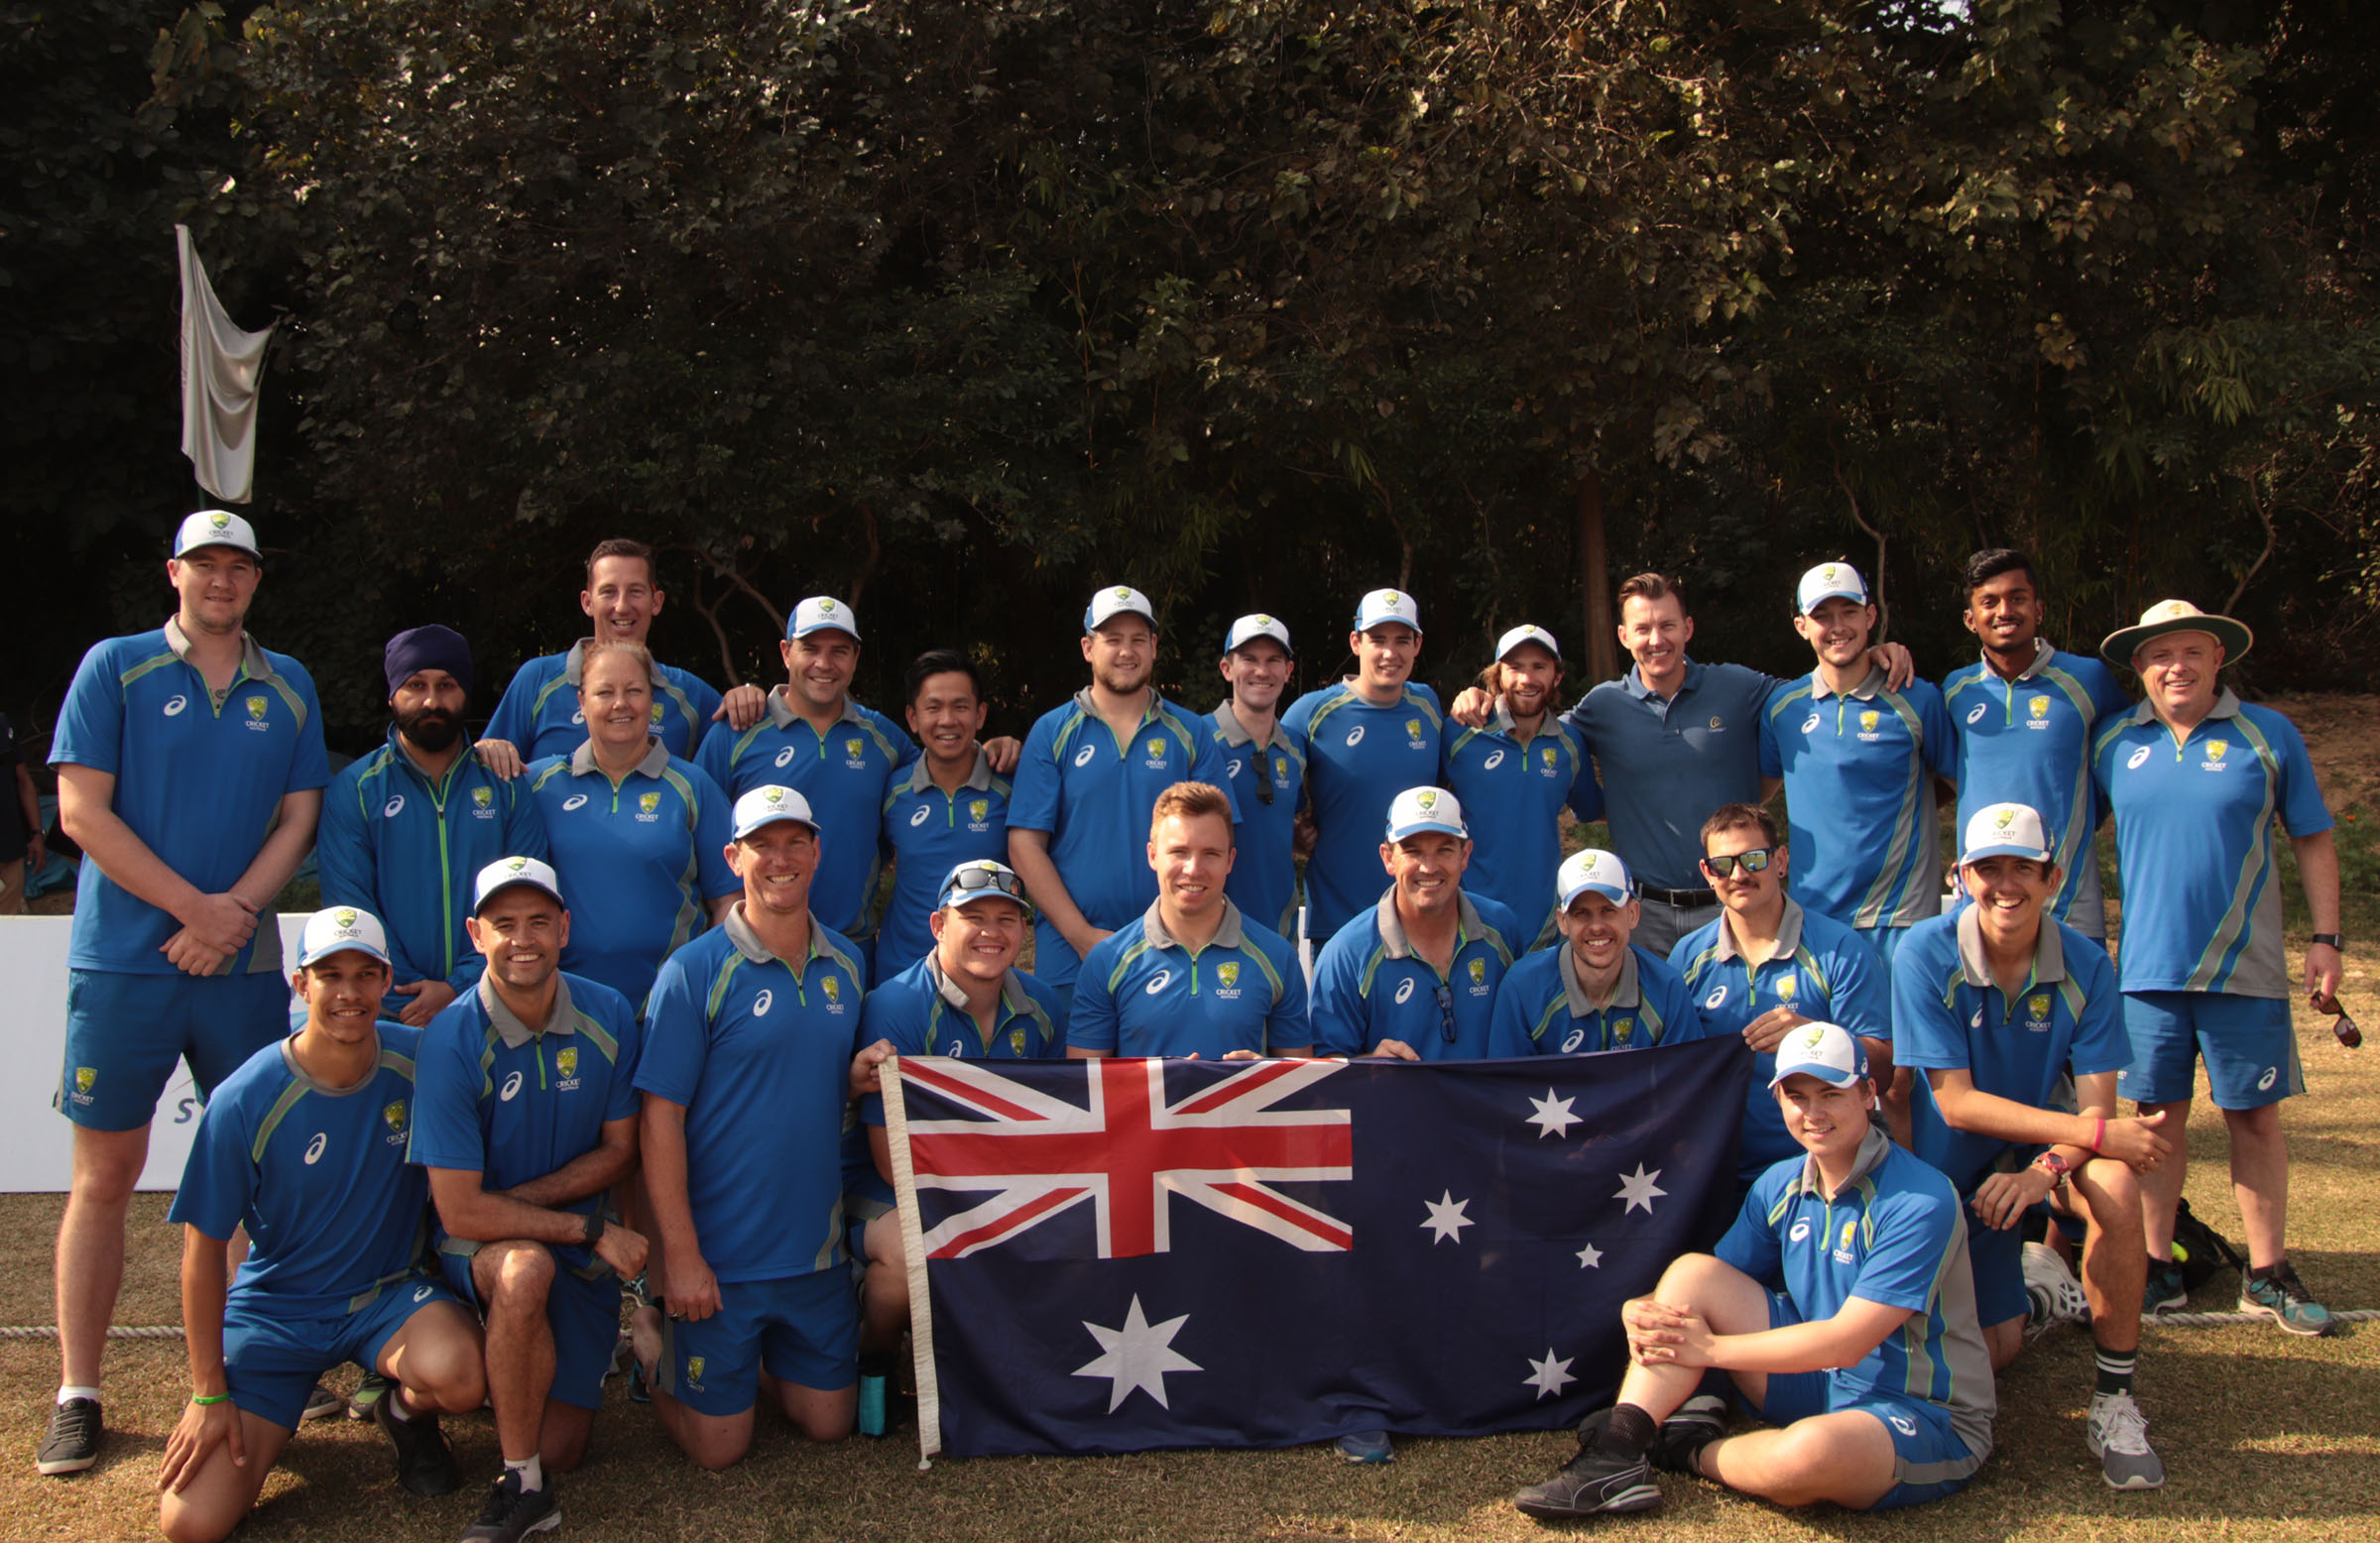 The Aussie squad flying the flag proudly